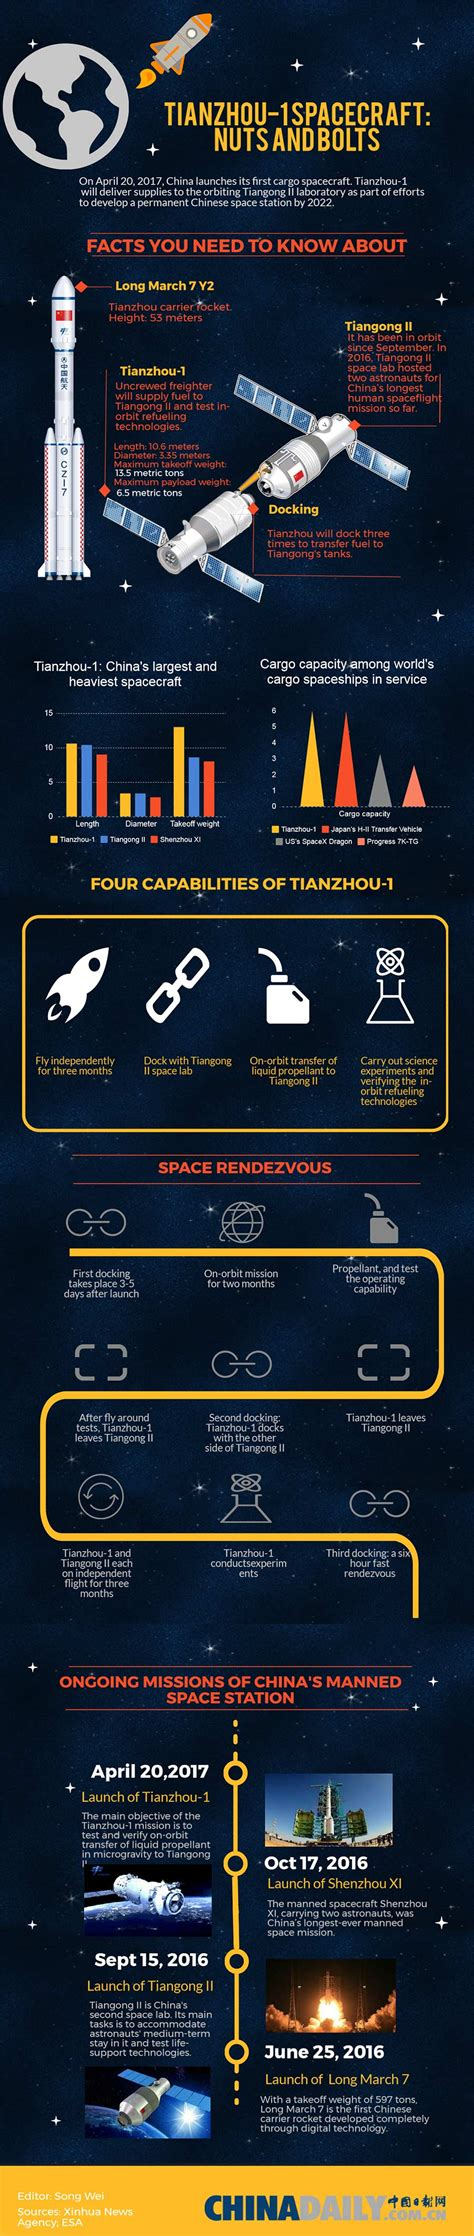 Tianzhou-1 spacecraft: Nuts and bolts - Chinadaily.com.cn